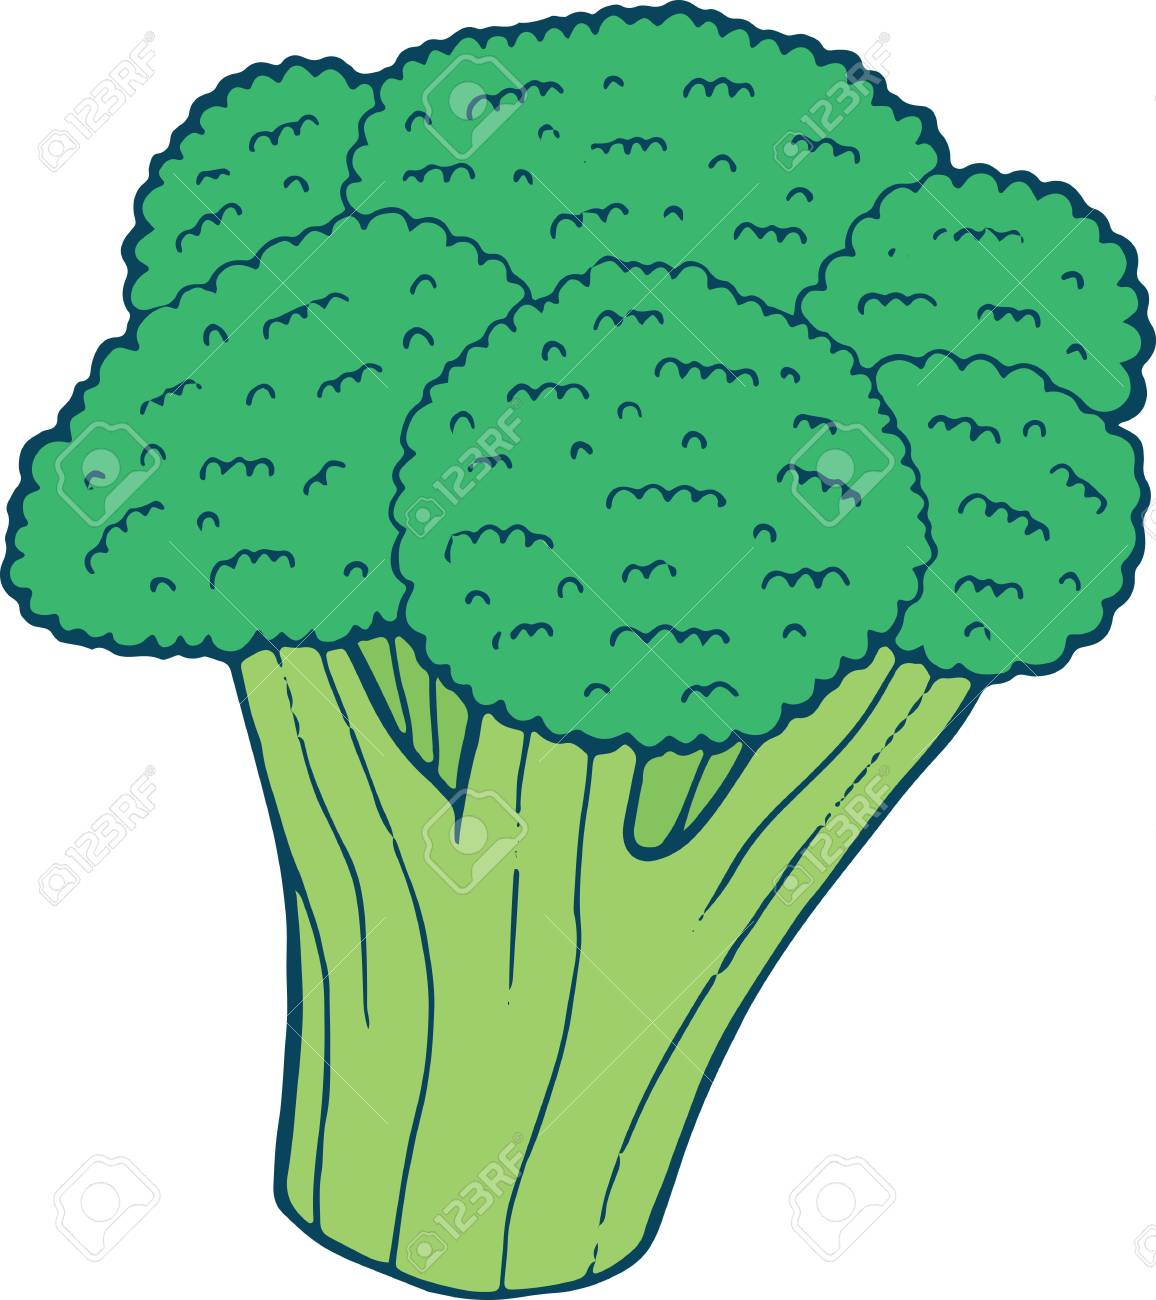 Broccoli Coloring Page Hand Drawn Illustration For Adult And Children Vector Art Book